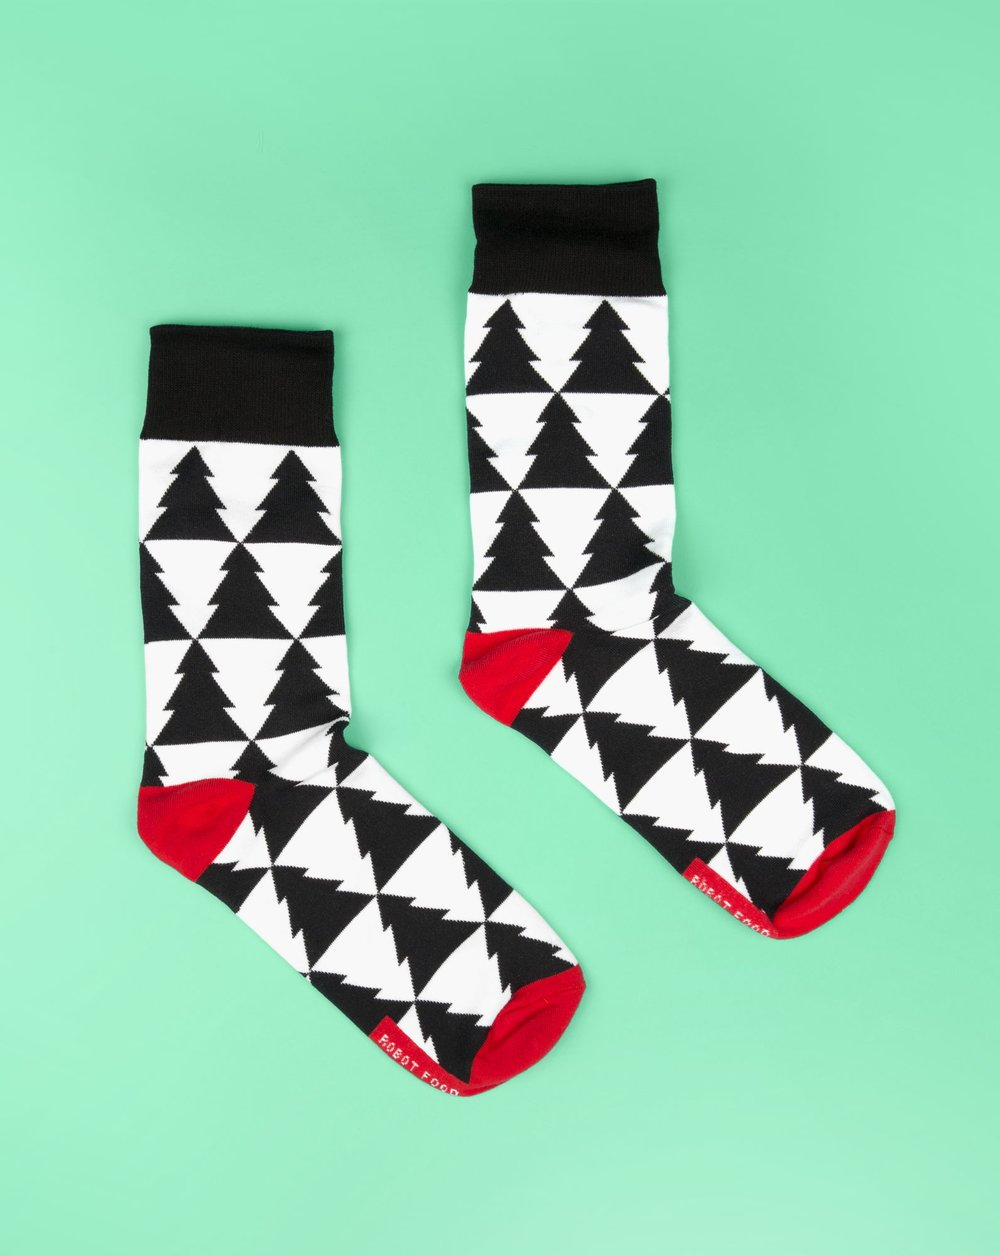 RF_ChristmasSocks_06.jpg